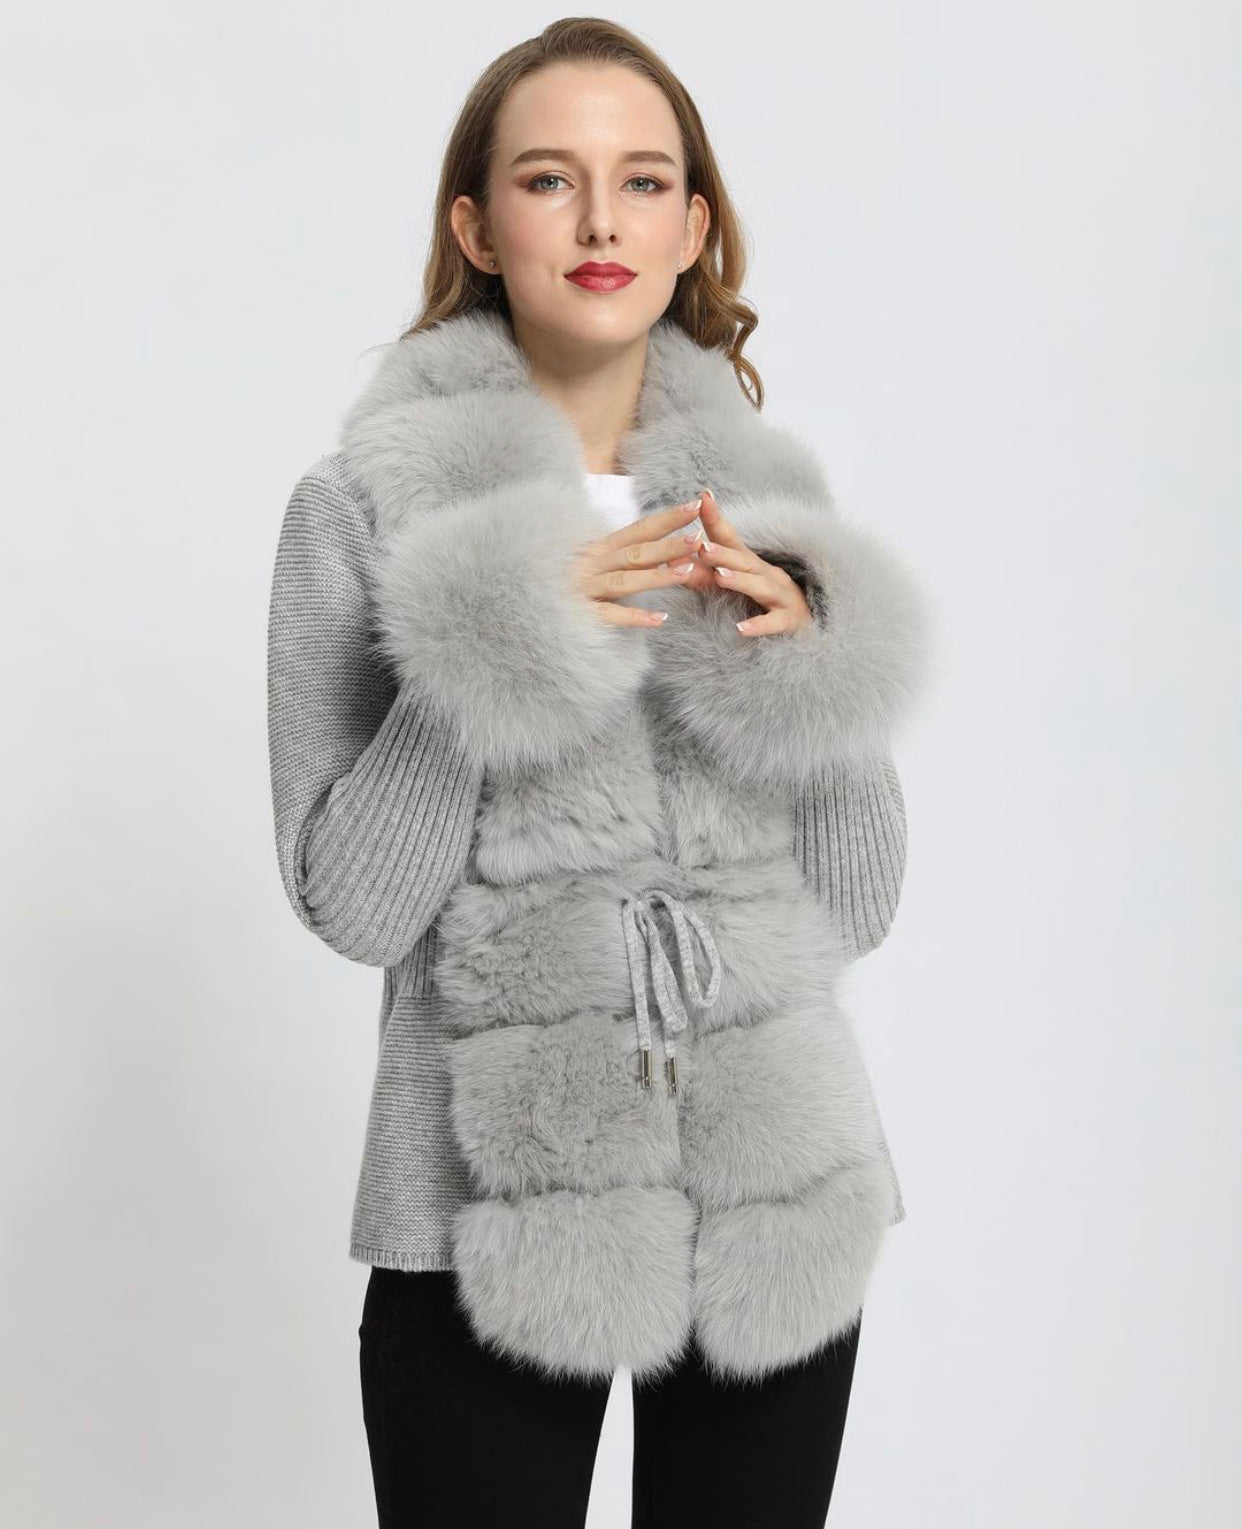 Luxurious Wool knit cardigan with Fox fur trim